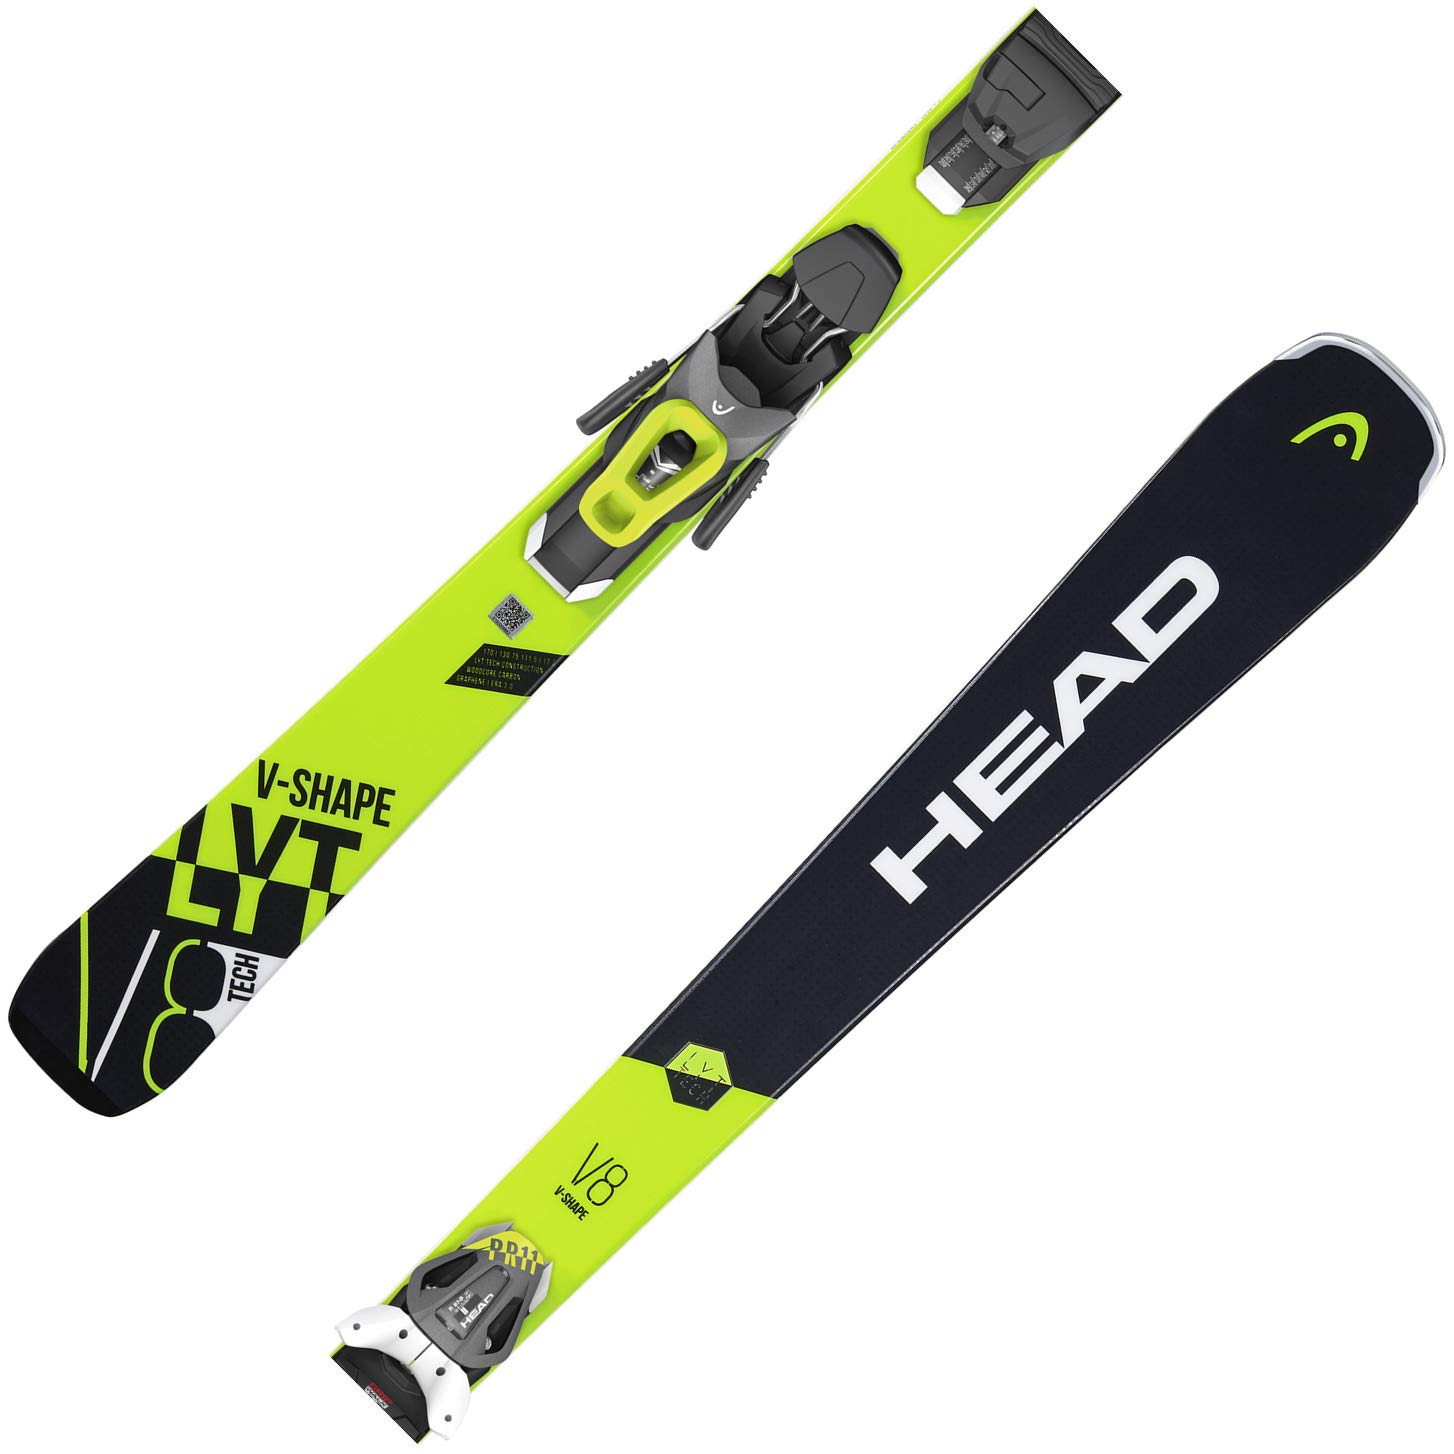 HEAD V-Shape V8 SW LYT-PR Ski 2019 inkl. PR 11 GW Brake 85 Anthracite/Matte White/Flash Yellow